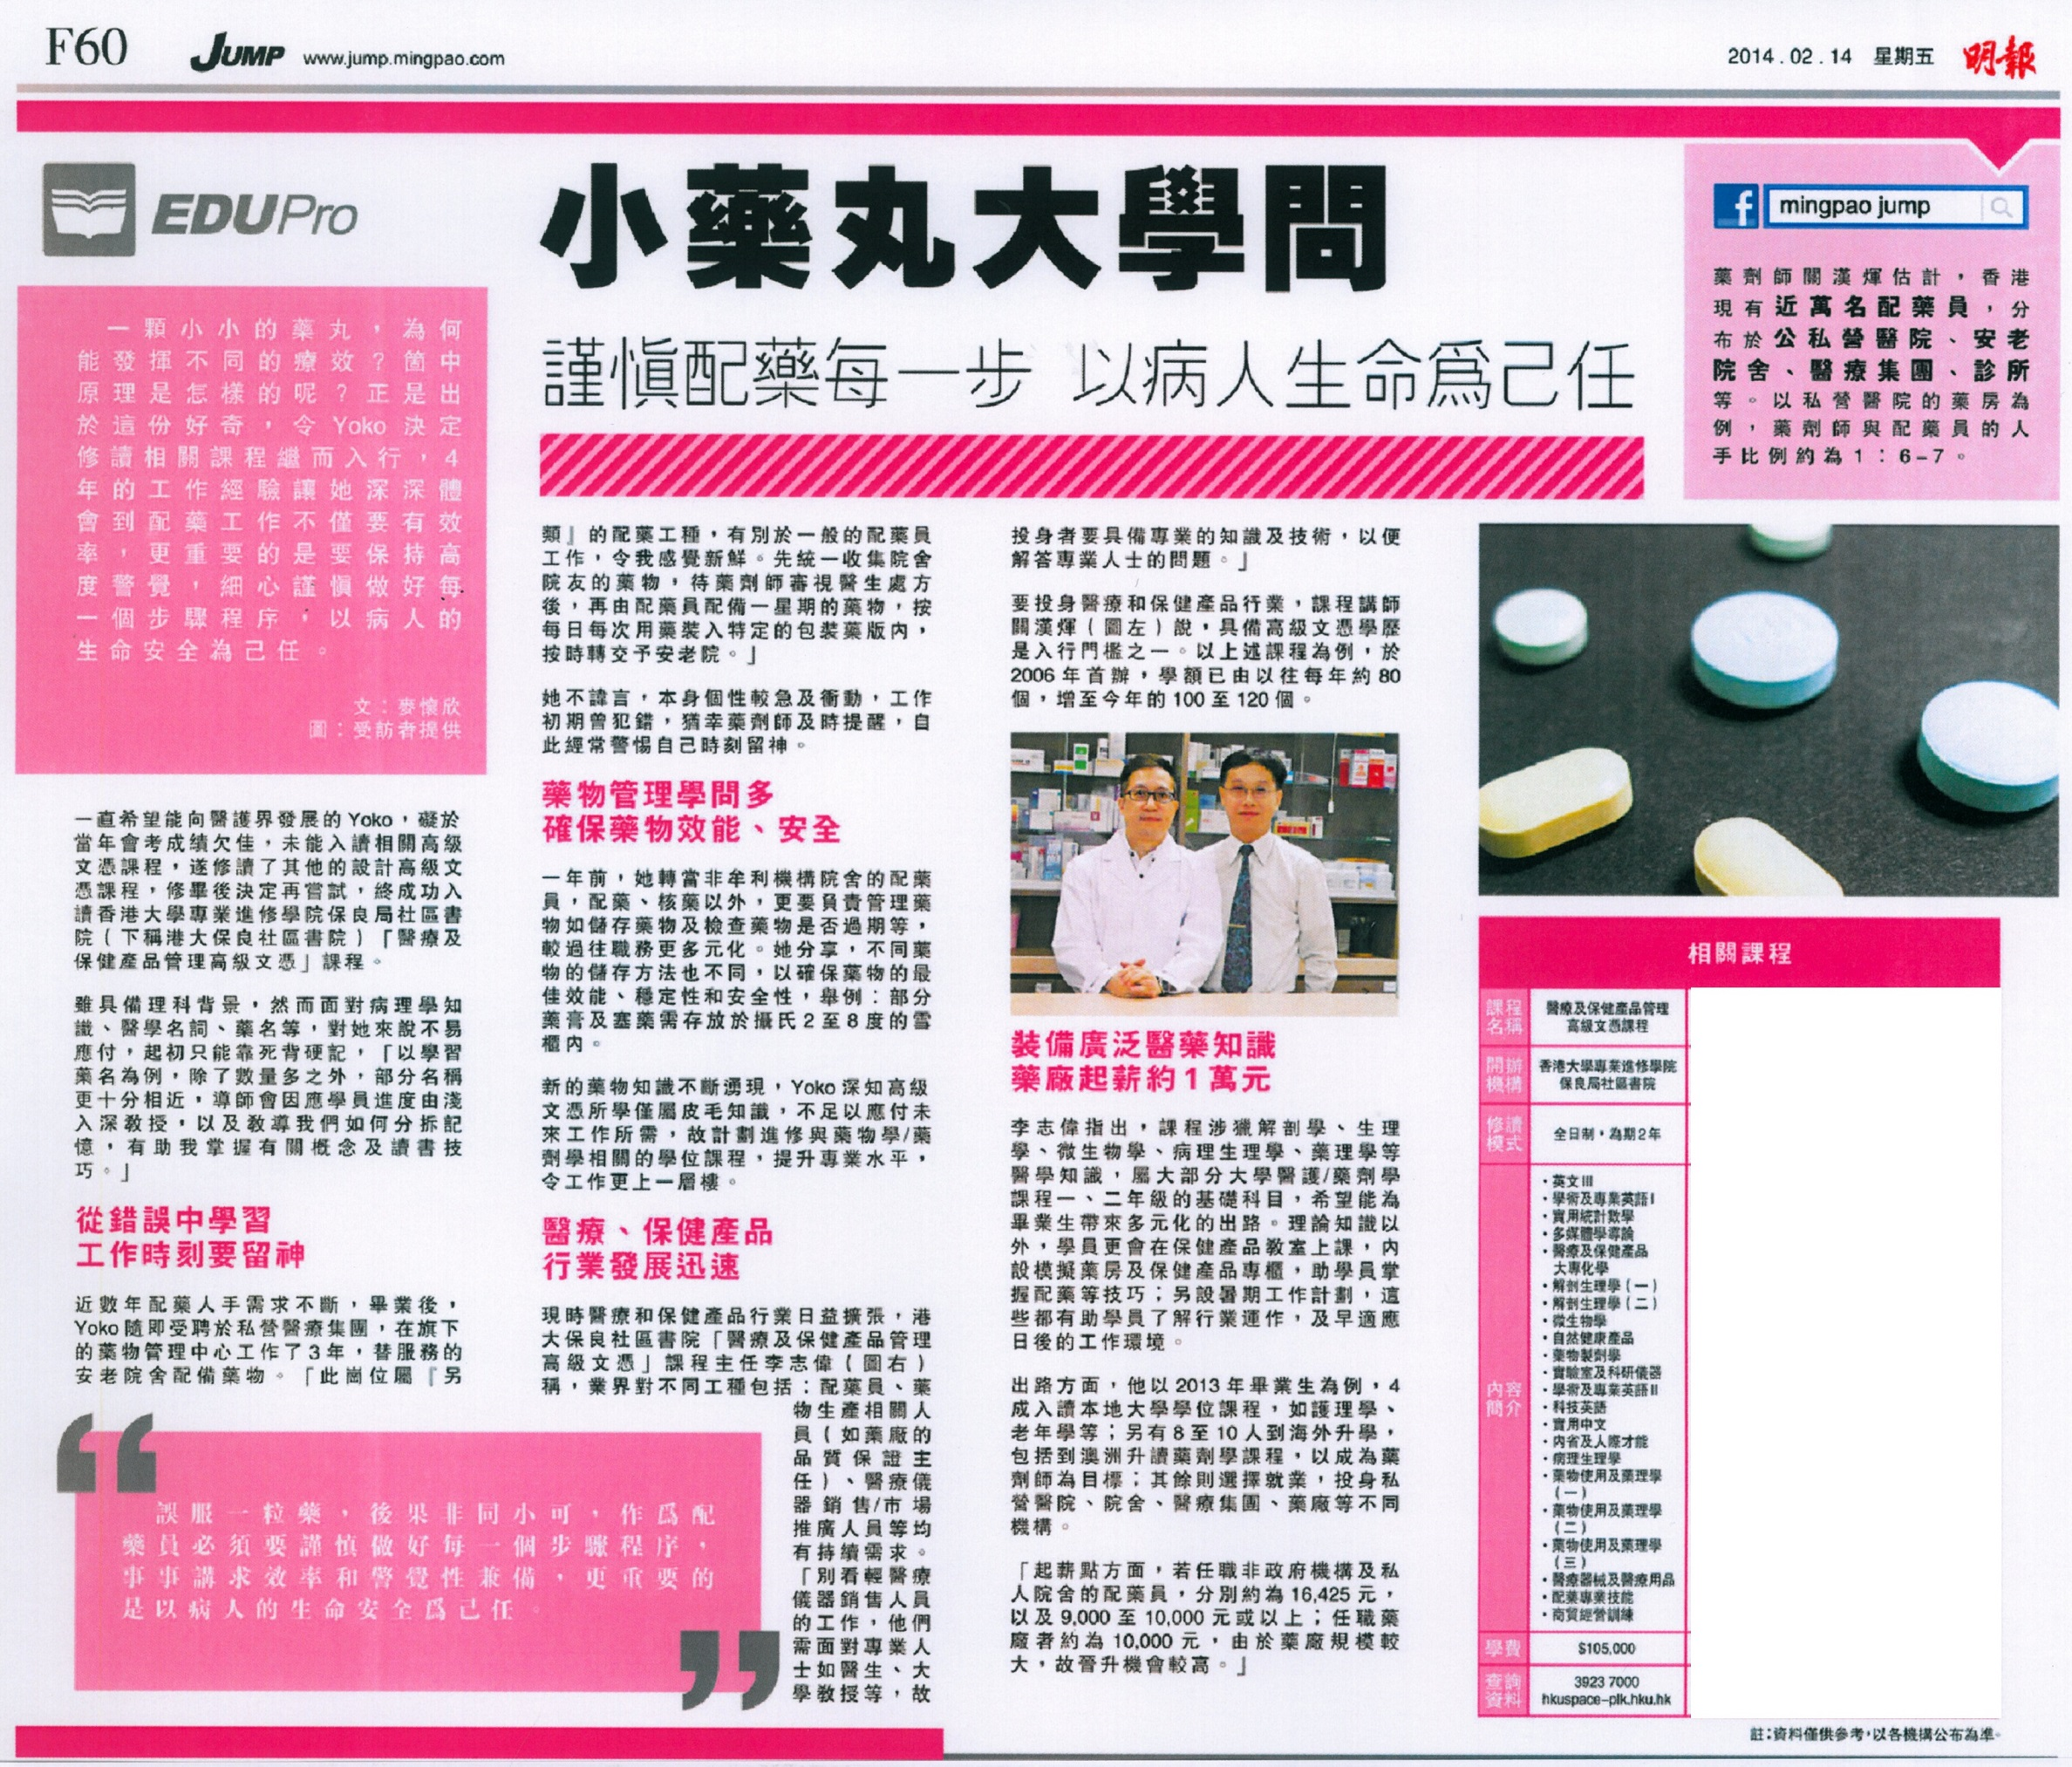 Article on Mingpao JUMP (14 Feb 2014) - Photo - 1